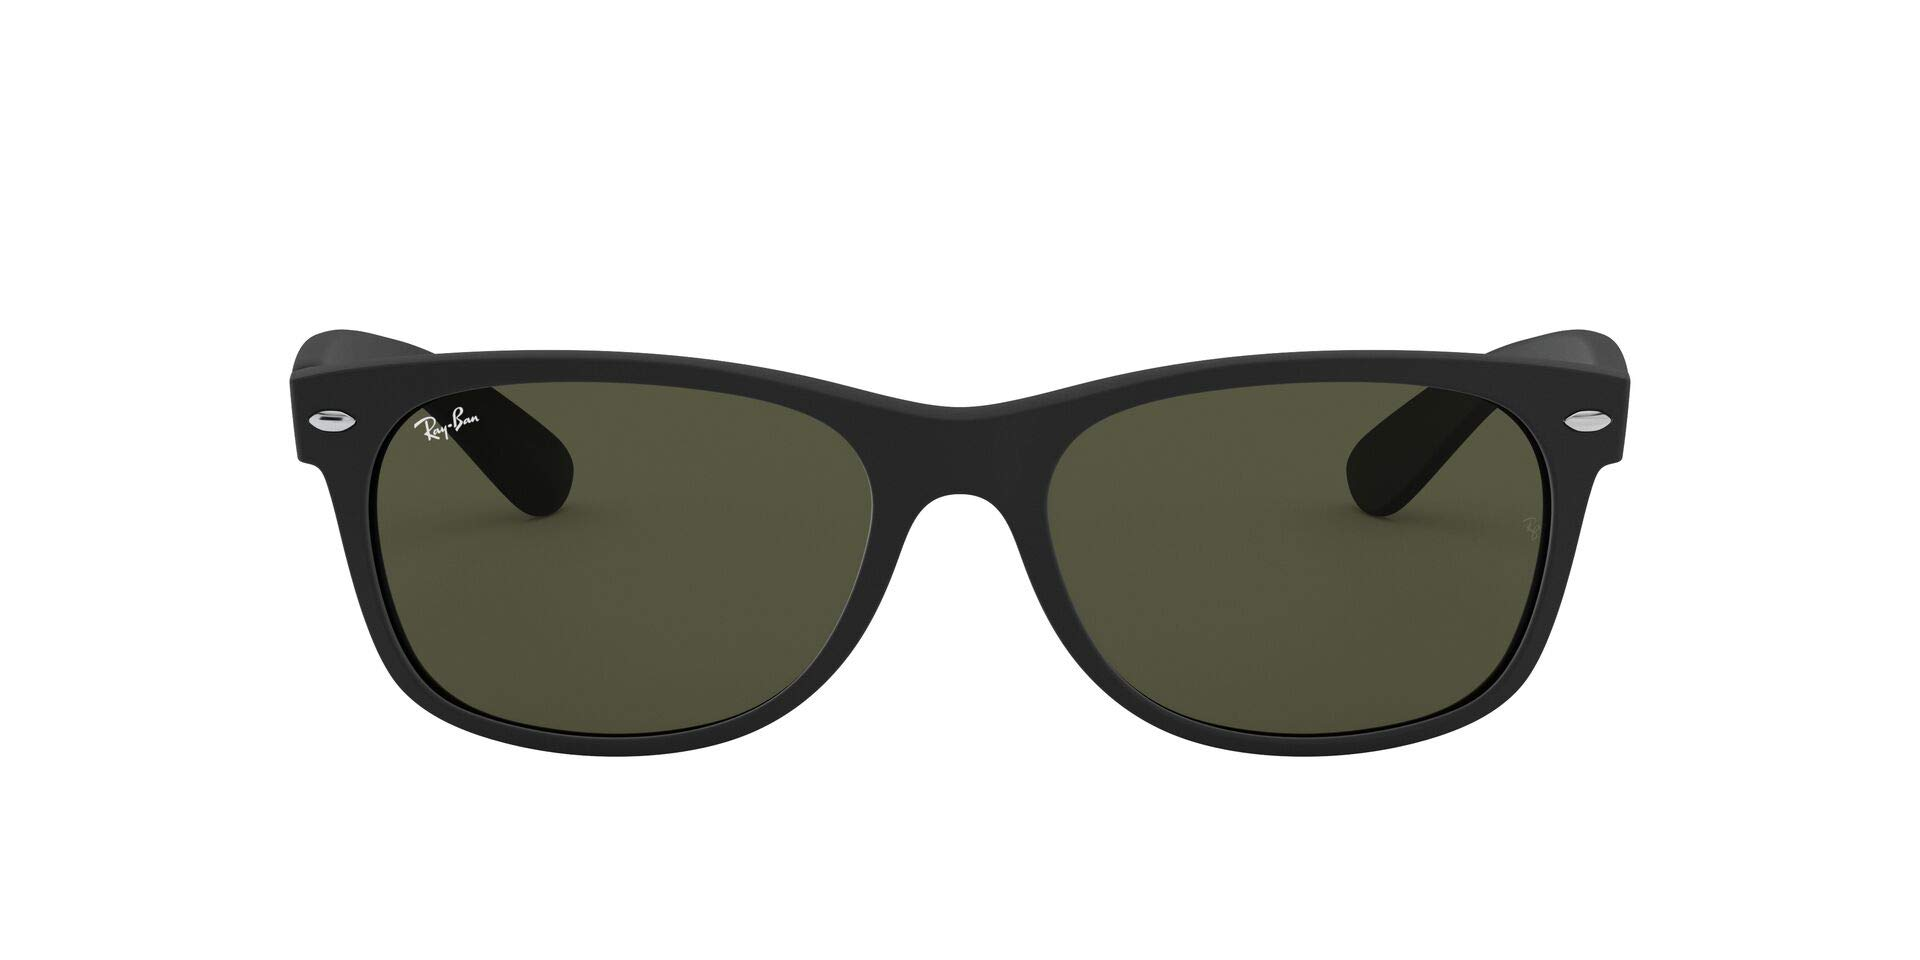 Ray-Ban RB2132 New Wayfarer Sunglasses, Black Rubber/Green, 52 mm by Ray-Ban